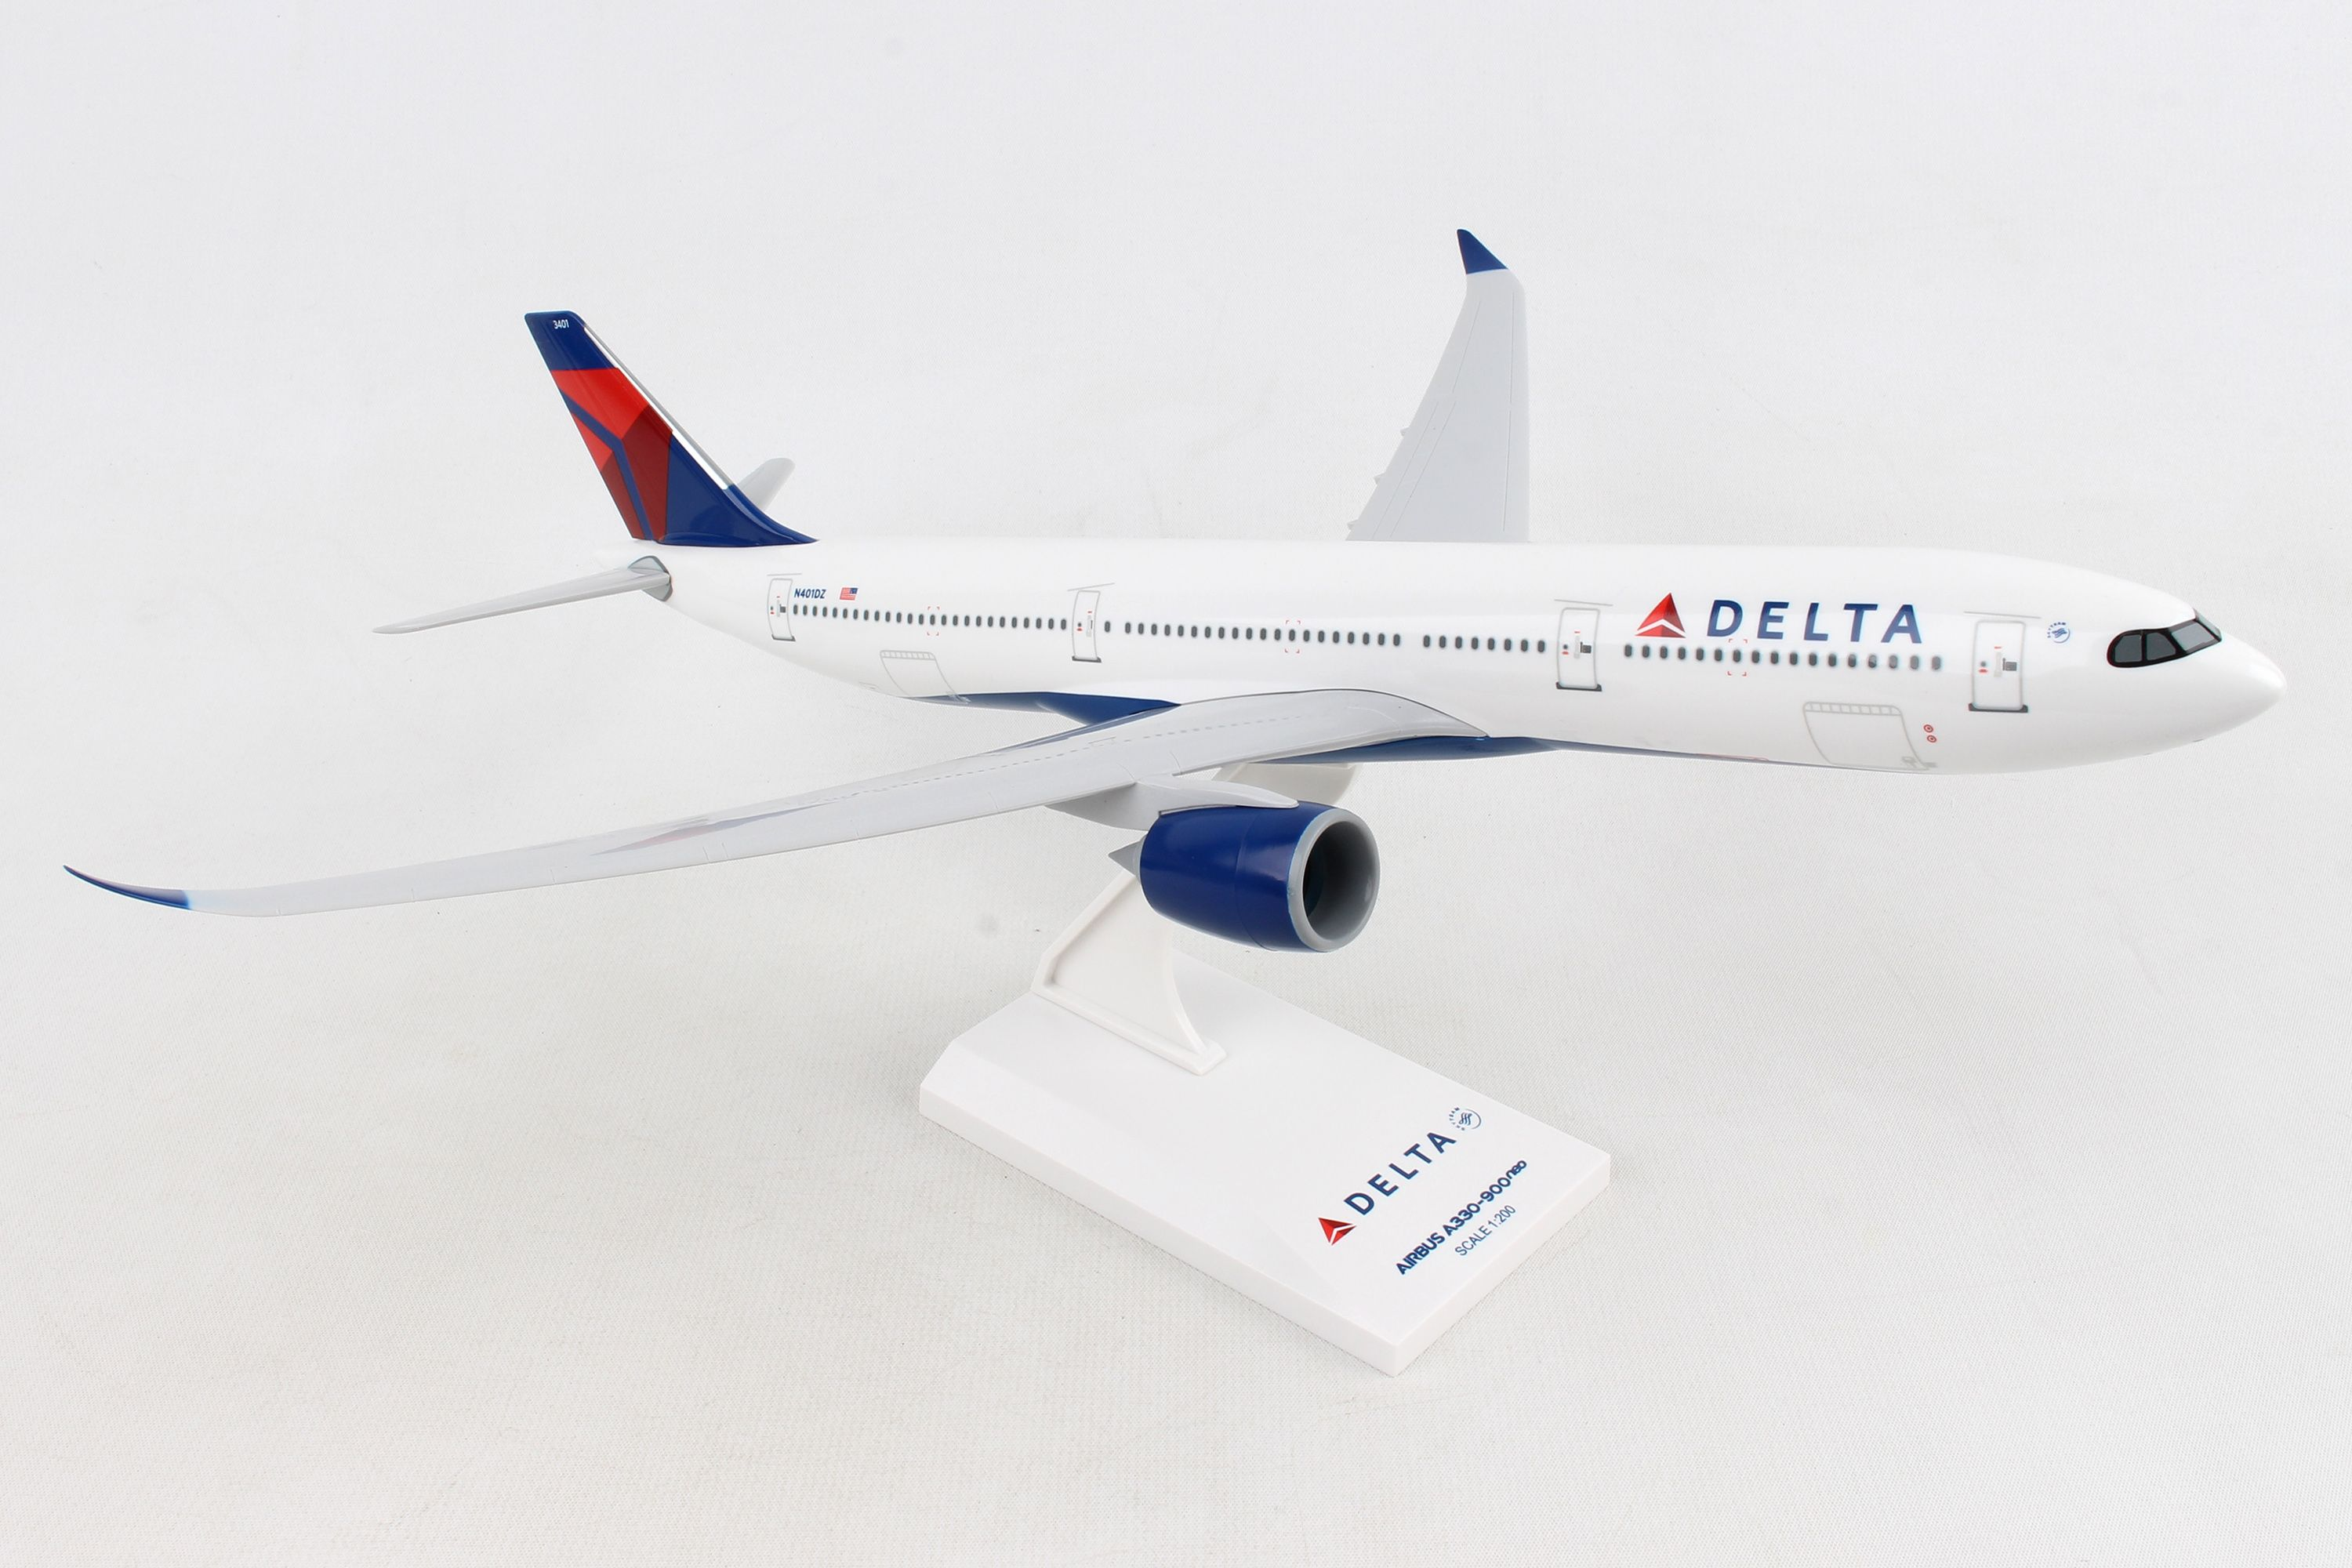 SkyMarks Flugzeugmodell Delta Airlines Airbus A330-900neo Maßstab 1:200